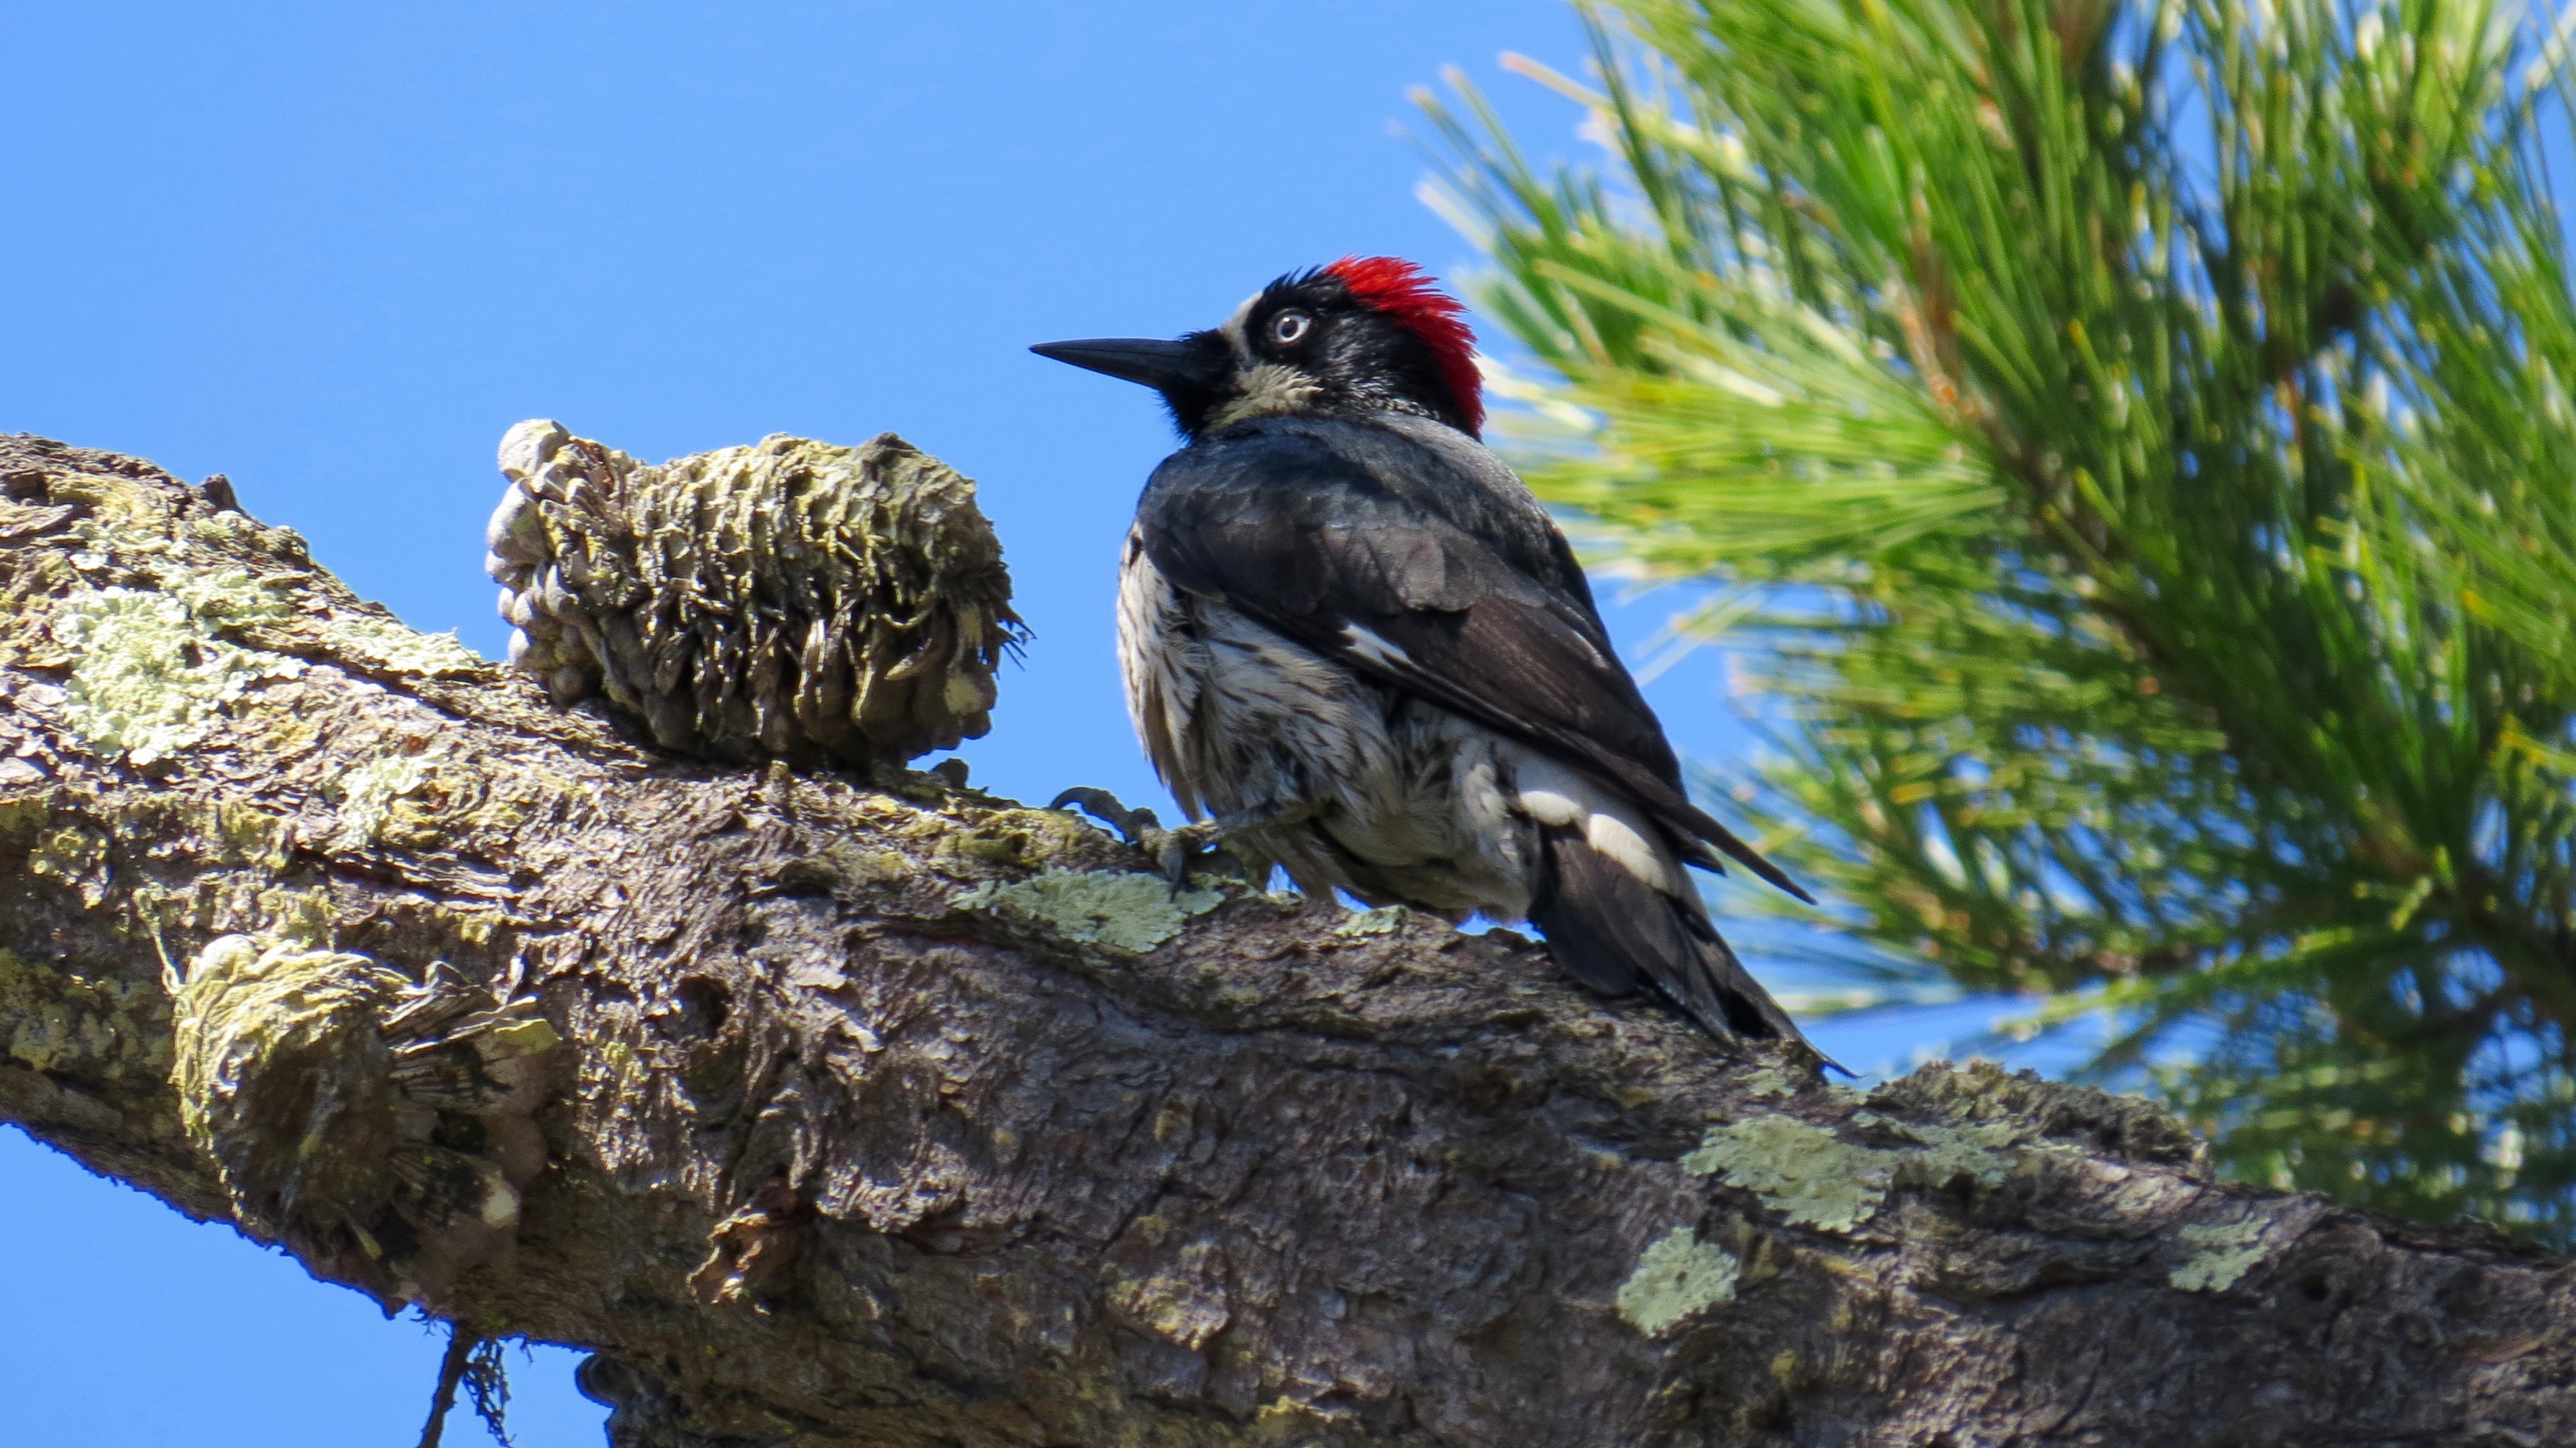 I will miss these crazy noisy clowns called Acorn Woodpeckers who live nearby.  If you ever spot a tall pole or tree riddled with hundreds of holes, each containing an acorn—it's an amazing Woodpecker granary tree. Stop and take a look.